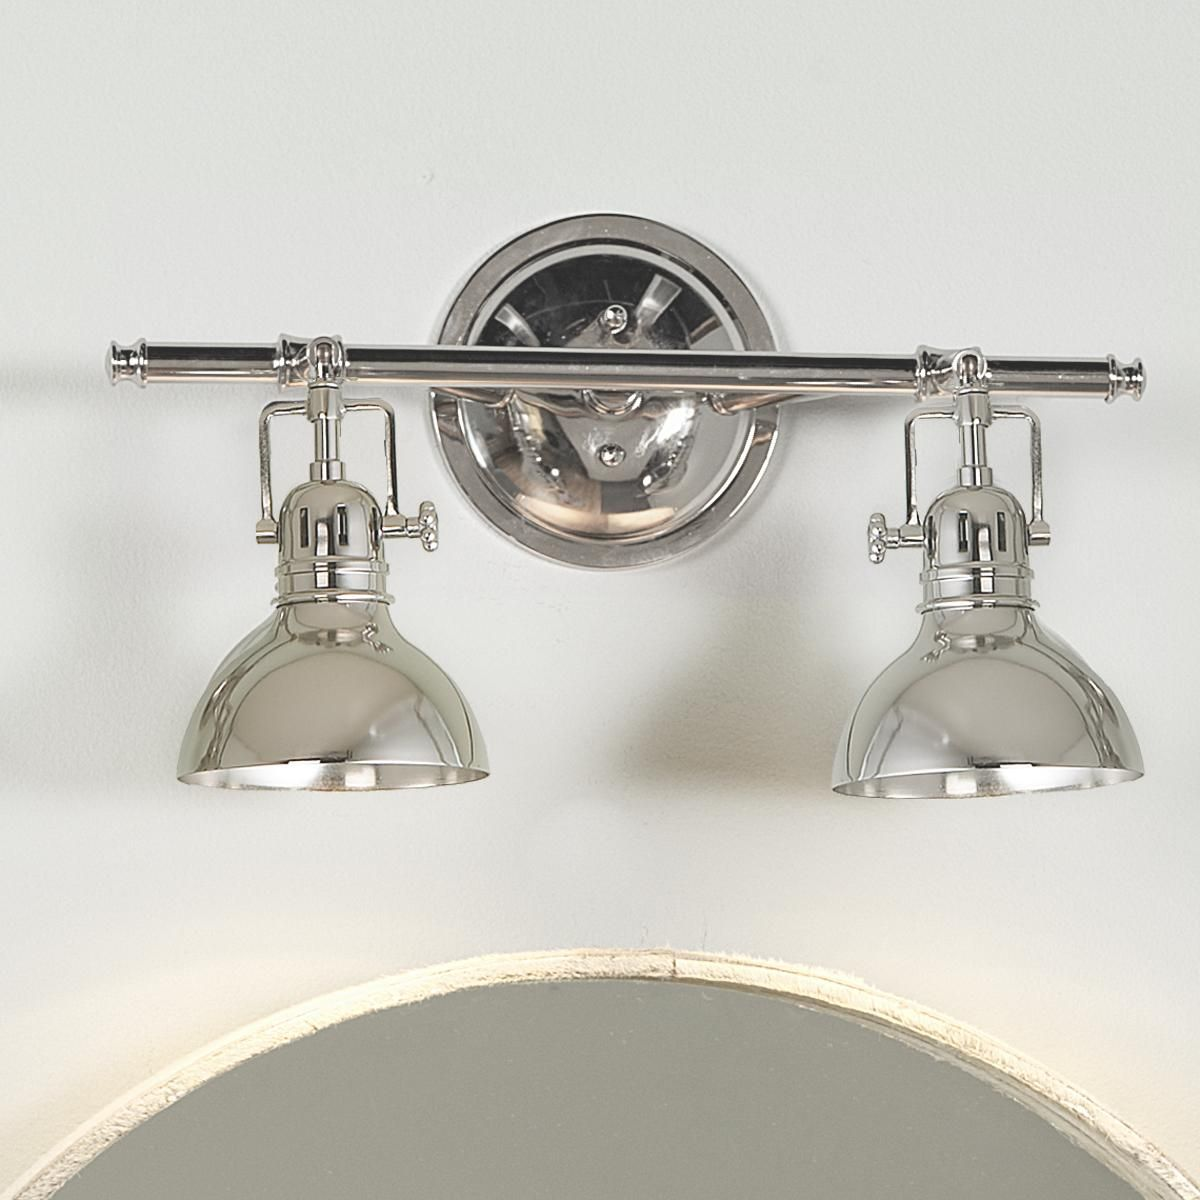 Pullman Bath Light 2 Finishes Chic Sleek And Unique This Vanity Has A Sophisticated Clean Lined Look Our Exclusive Steel